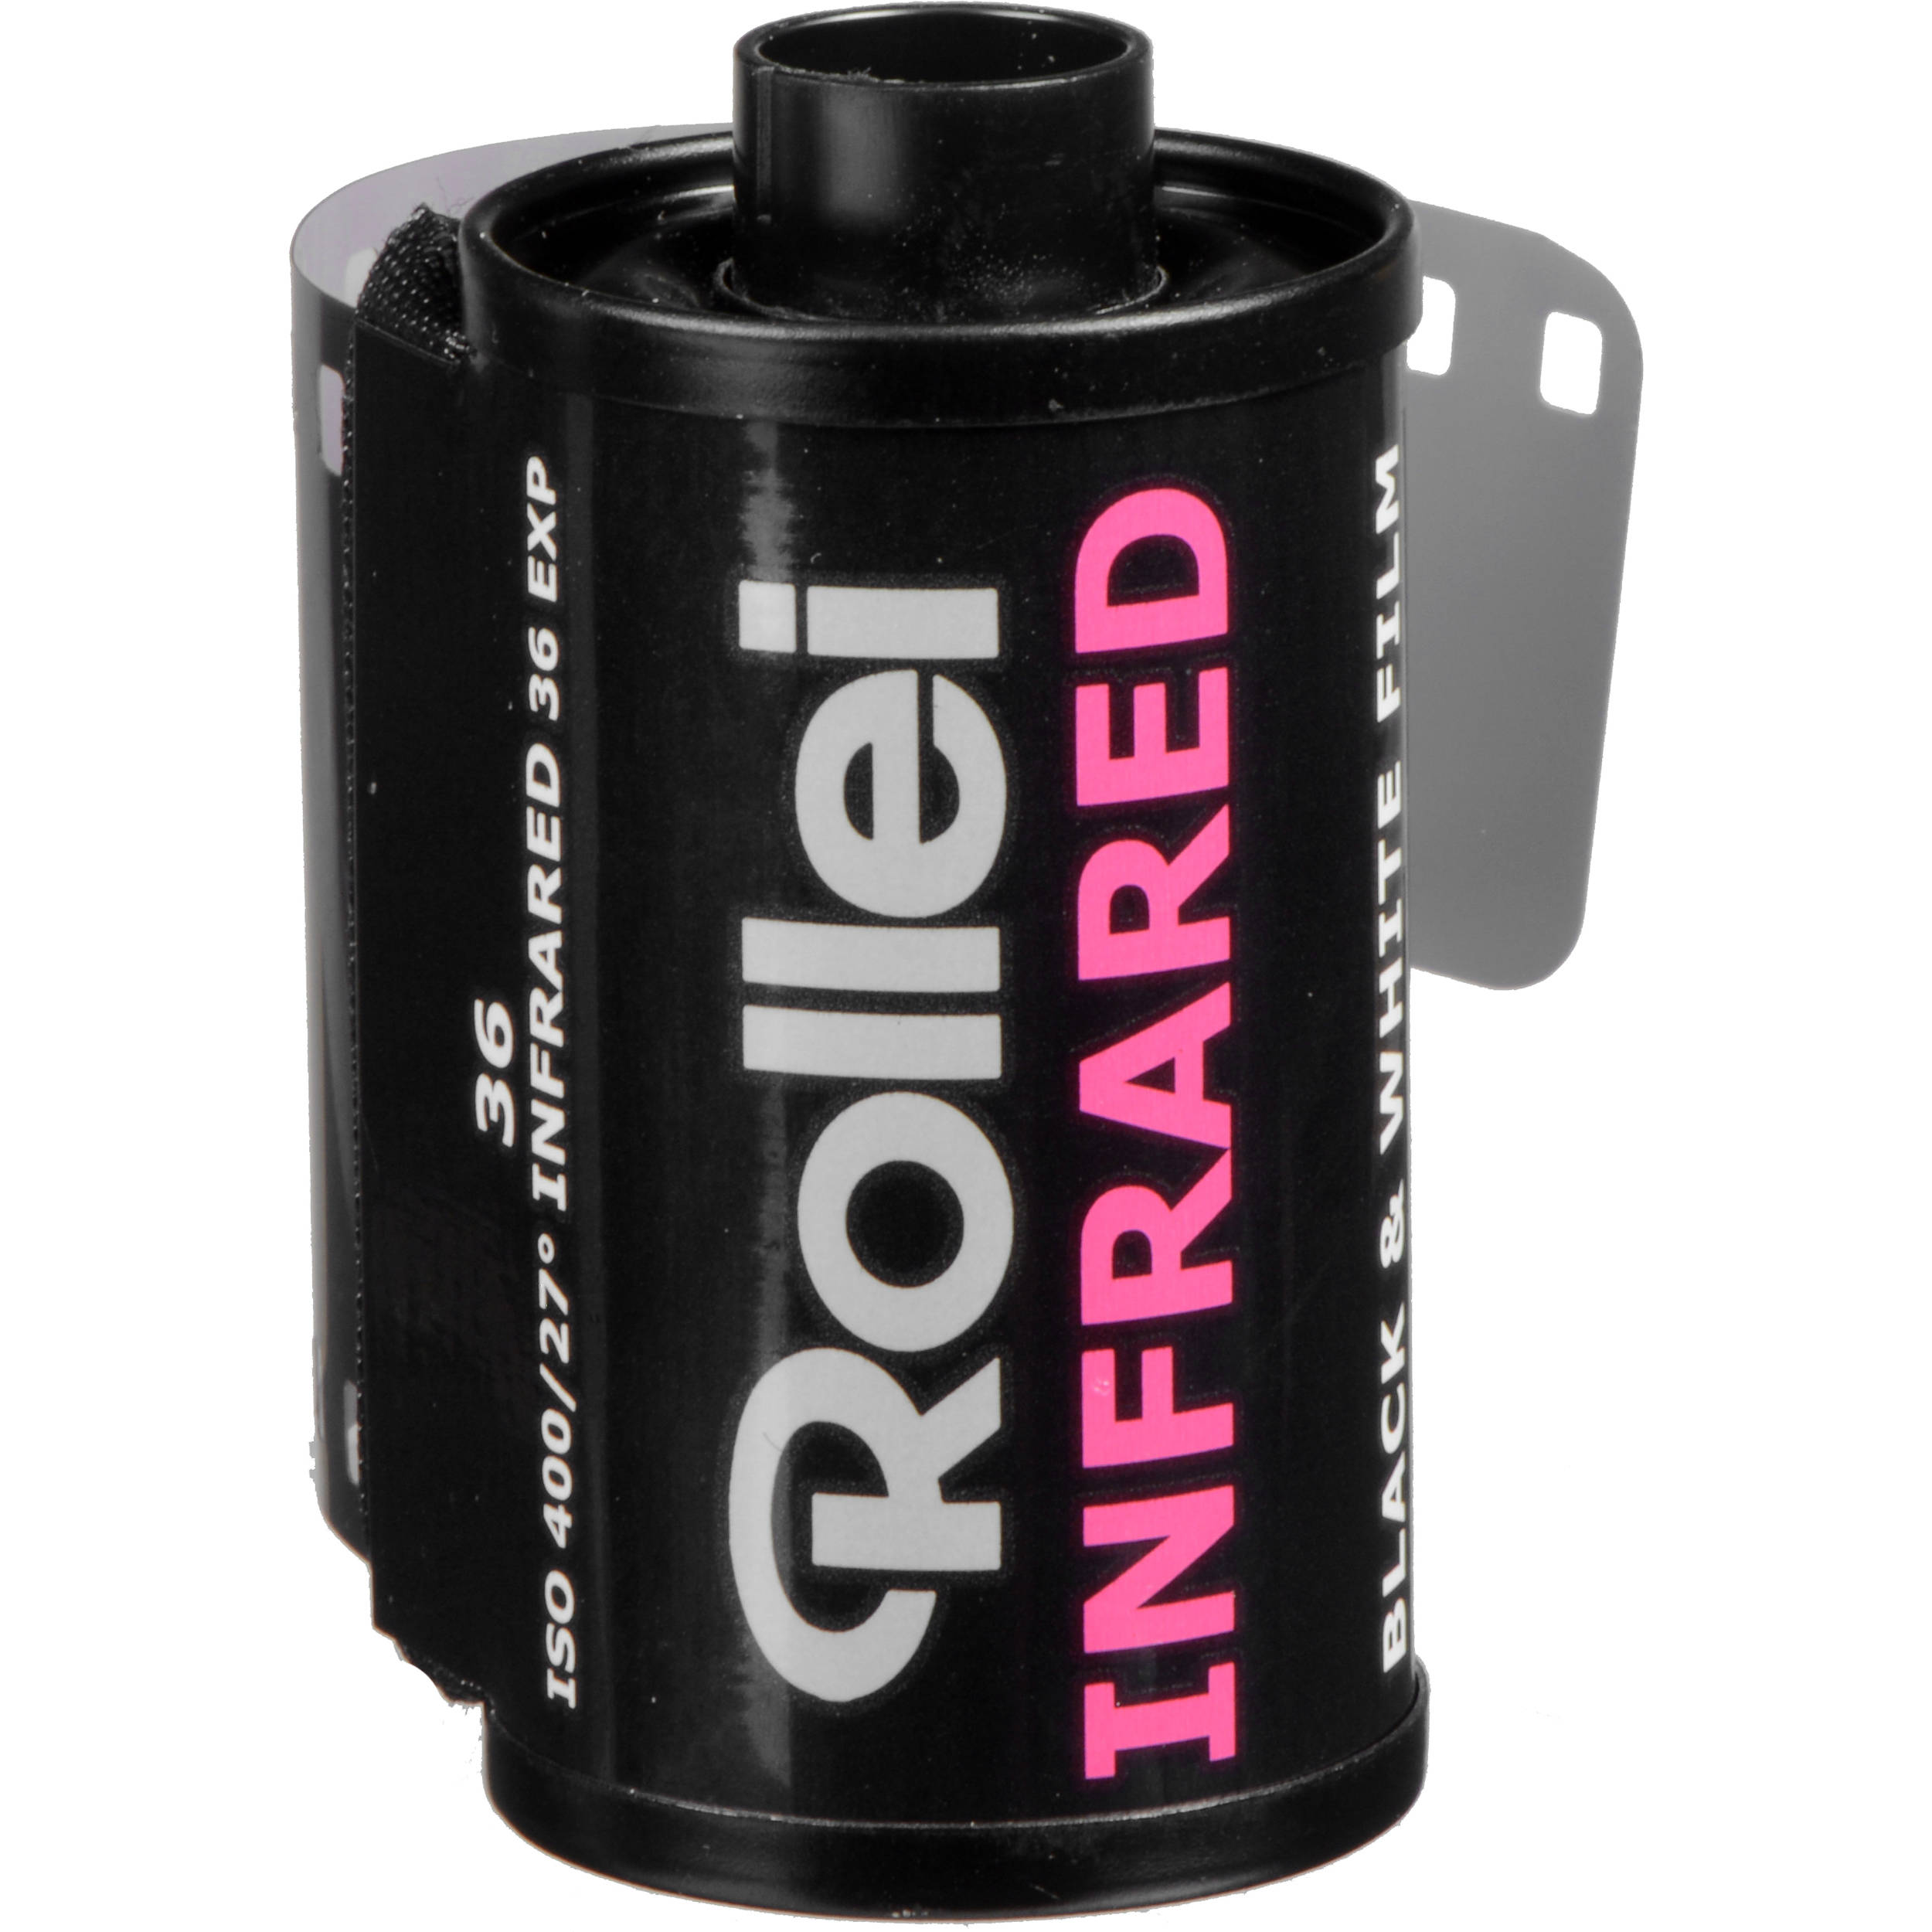 Rollei Agfa Infrared Black